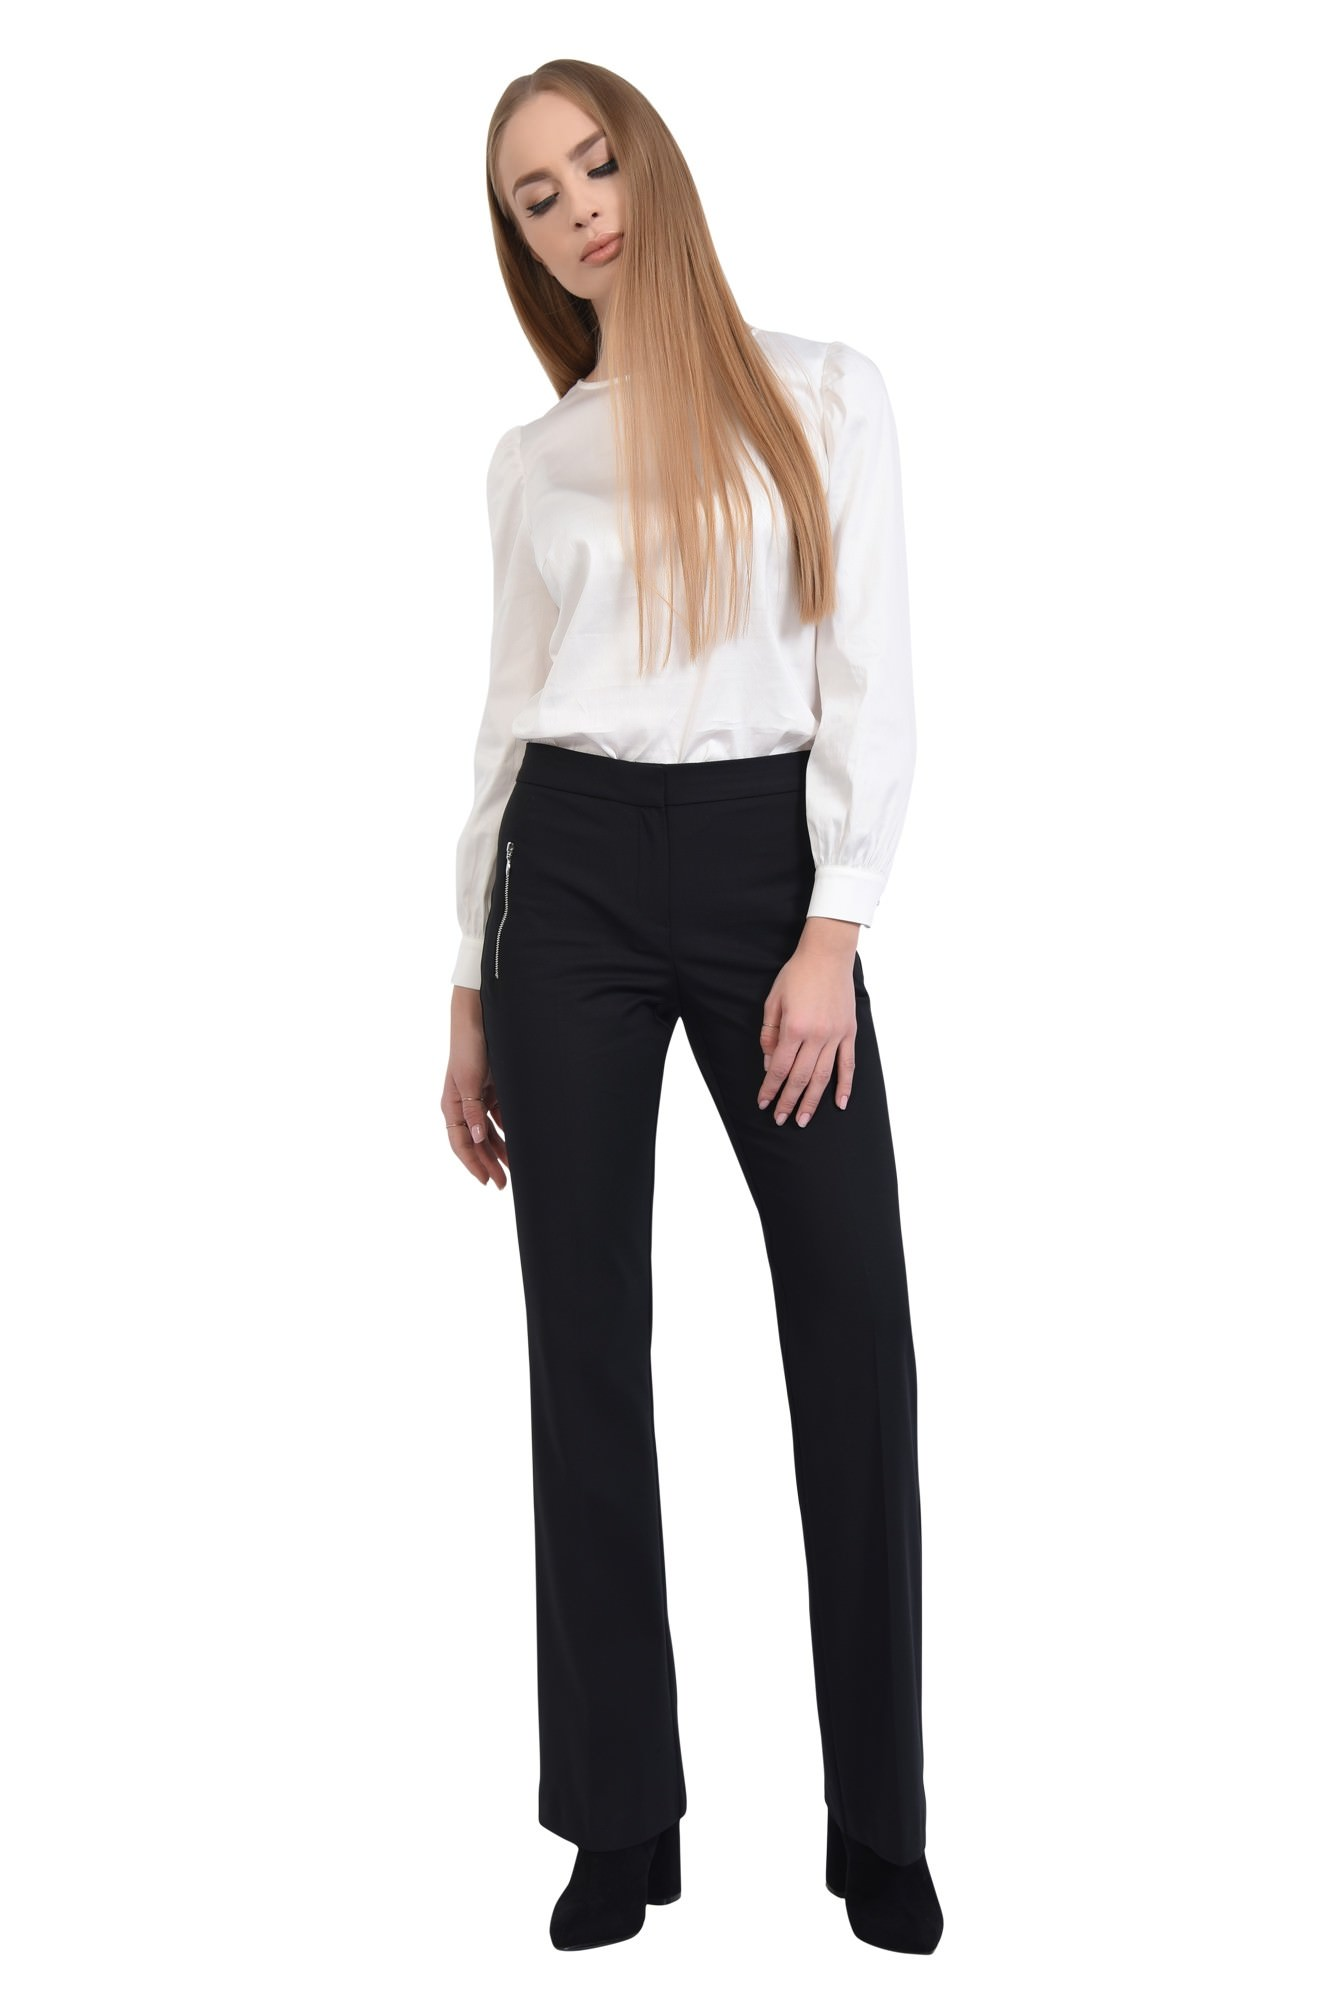 PANTALON OFFICE PT 181-NEGRU